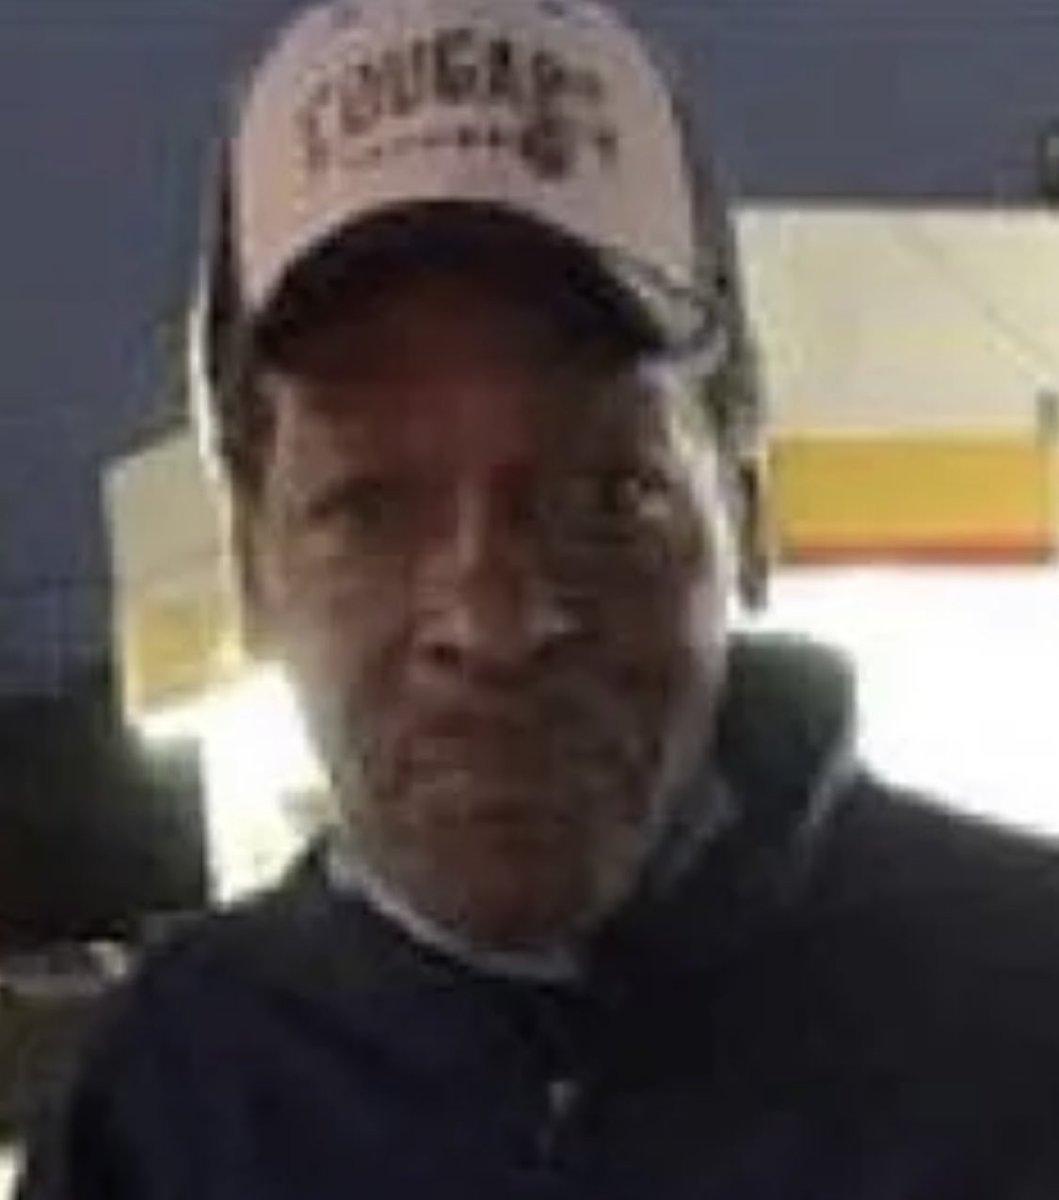 #Illinois Man #missing for weeks from Englewood  https://t.co/9ZXlidhtVF https://t.co/wBnyJWYYHx